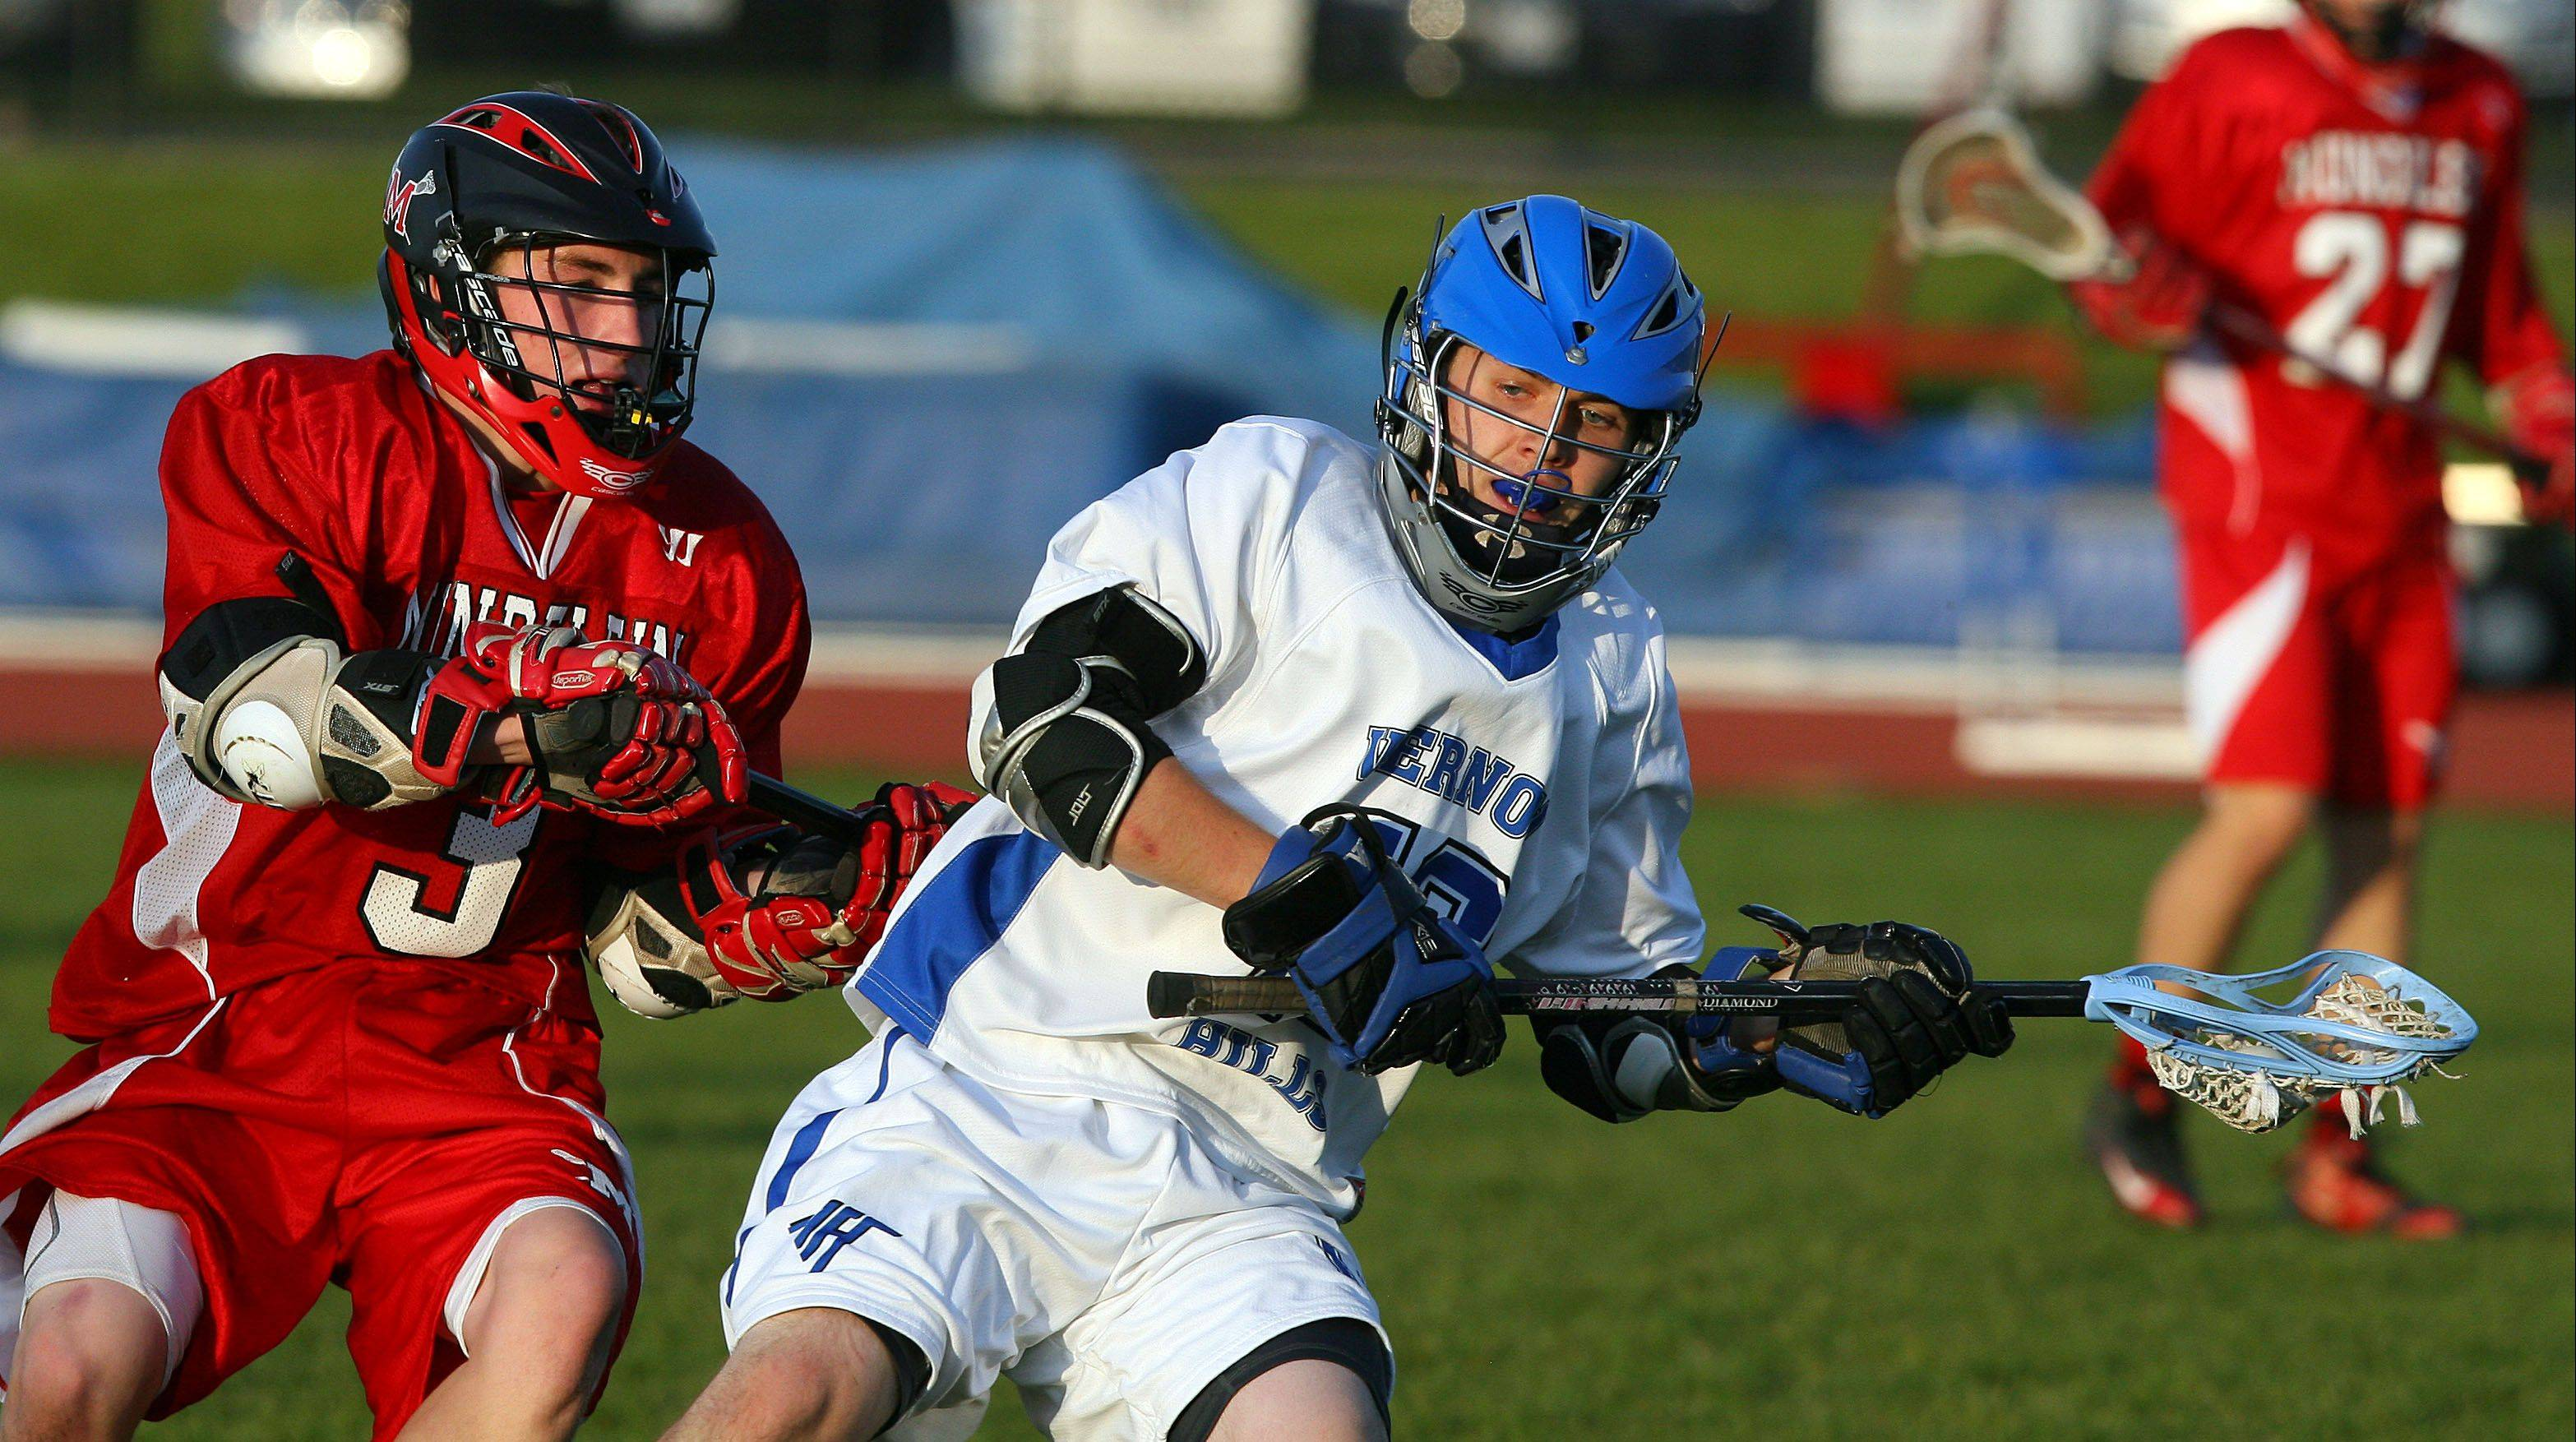 Mundelein's Hunter Ebdon, left, and Vernon Hills' Phillips Brown battle for the ball.